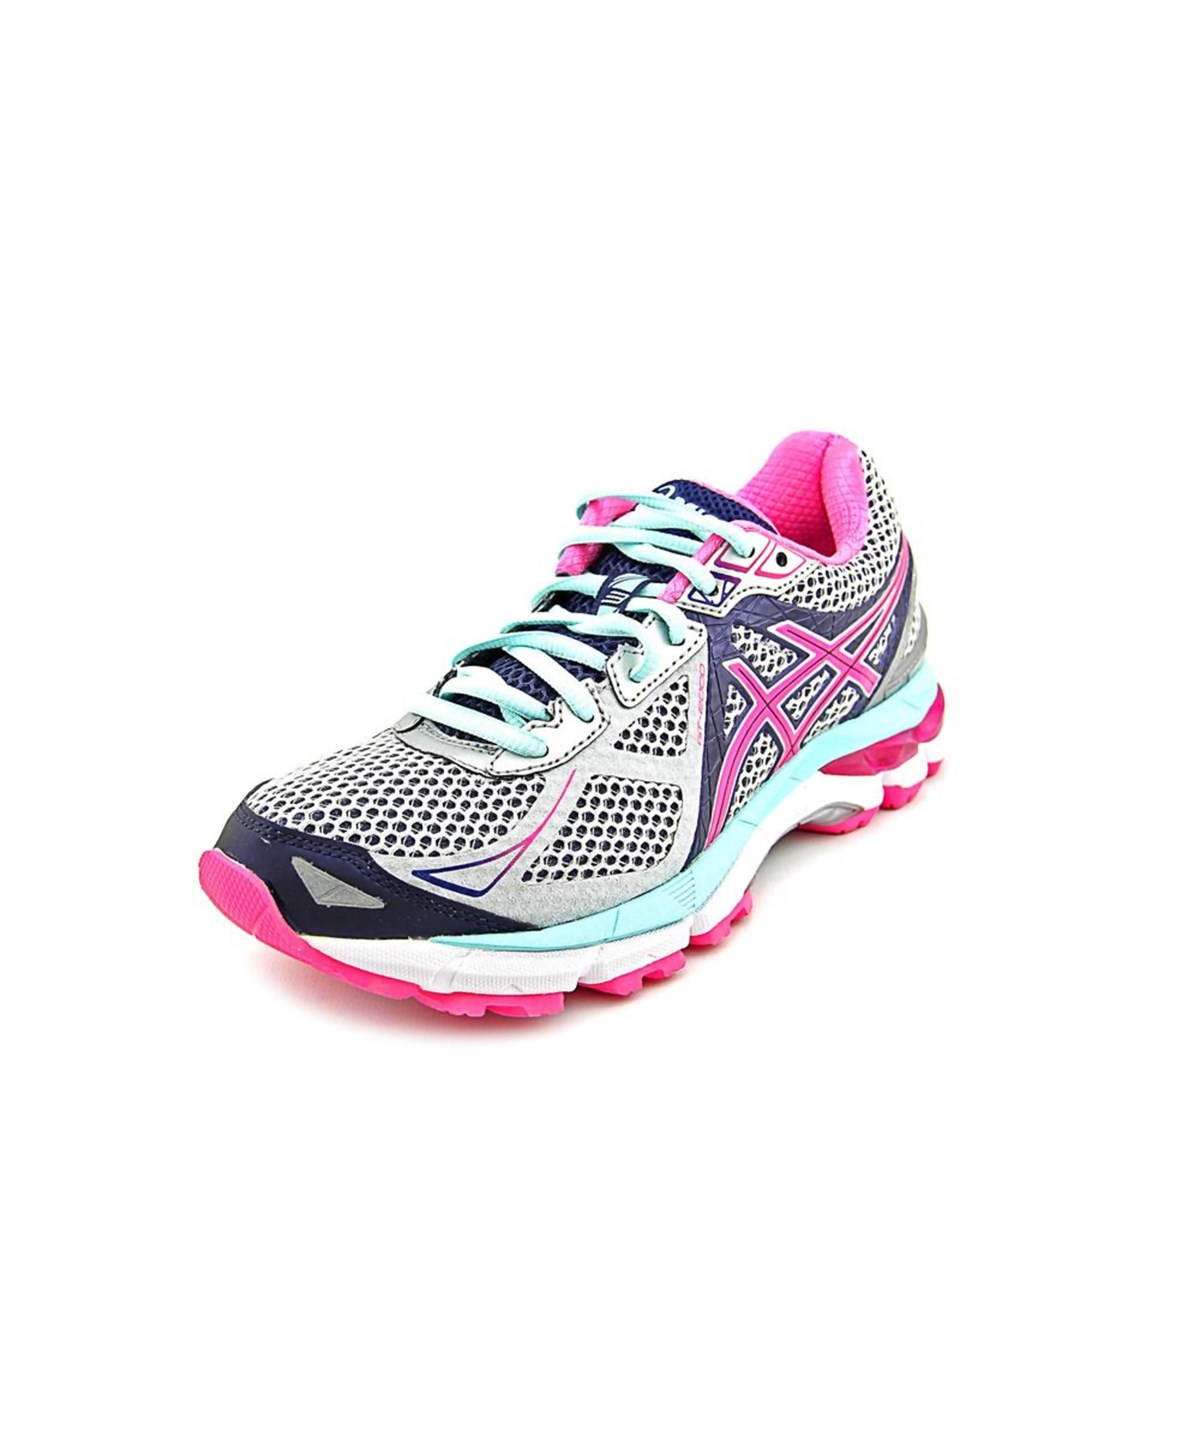 Asics Gt-2000 3 Women  Round Toe Synthetic Pink Running Shoe'